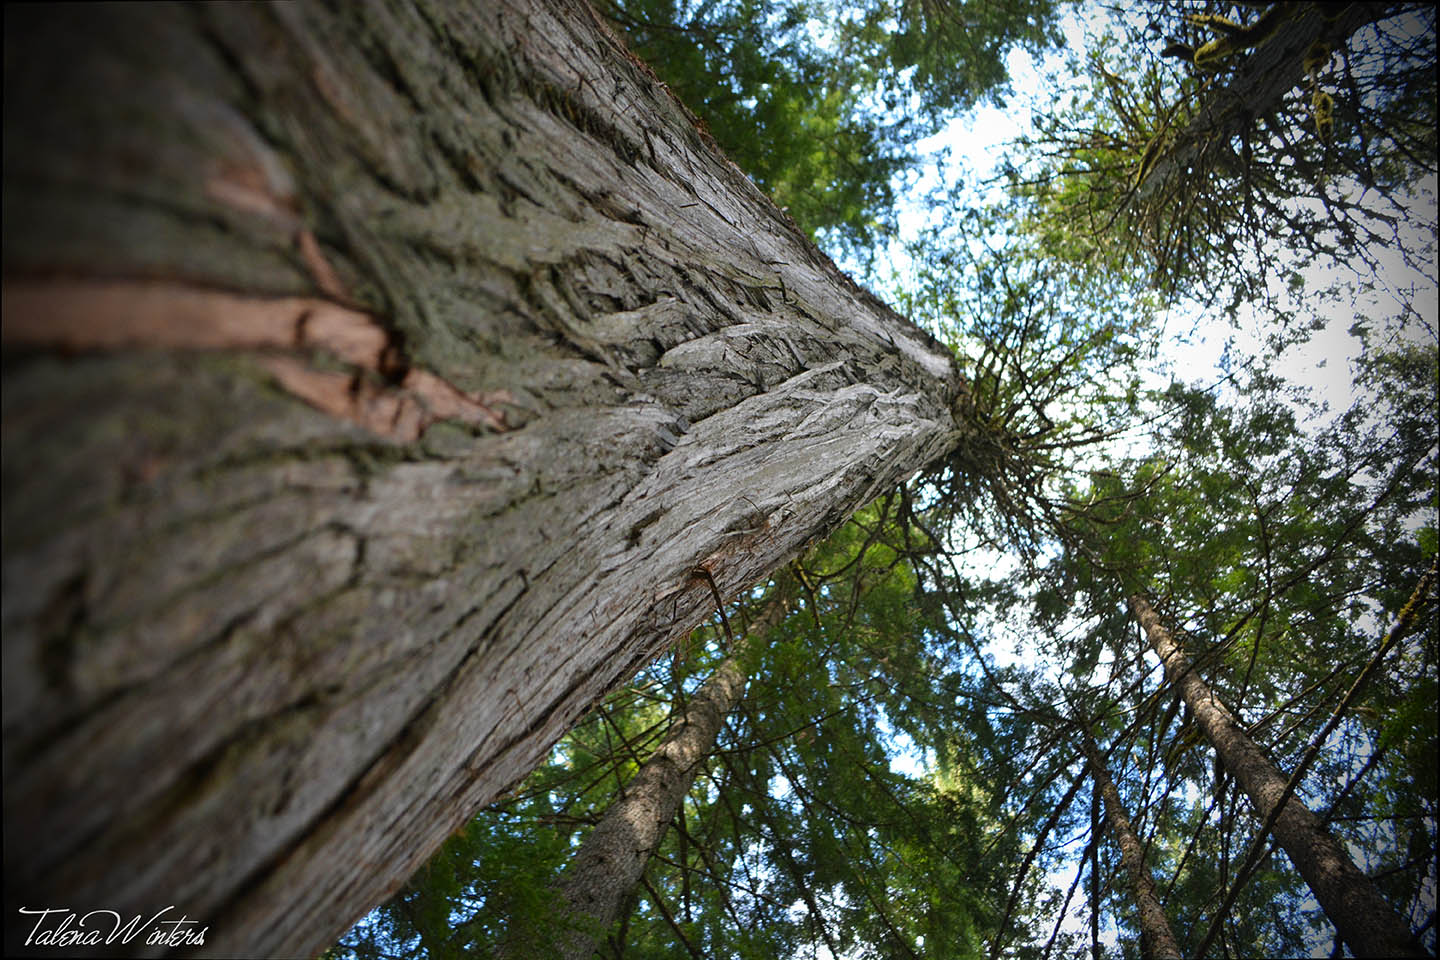 A new perspective at the Giant Cedars Boardwalk near Revelstoke, BC.